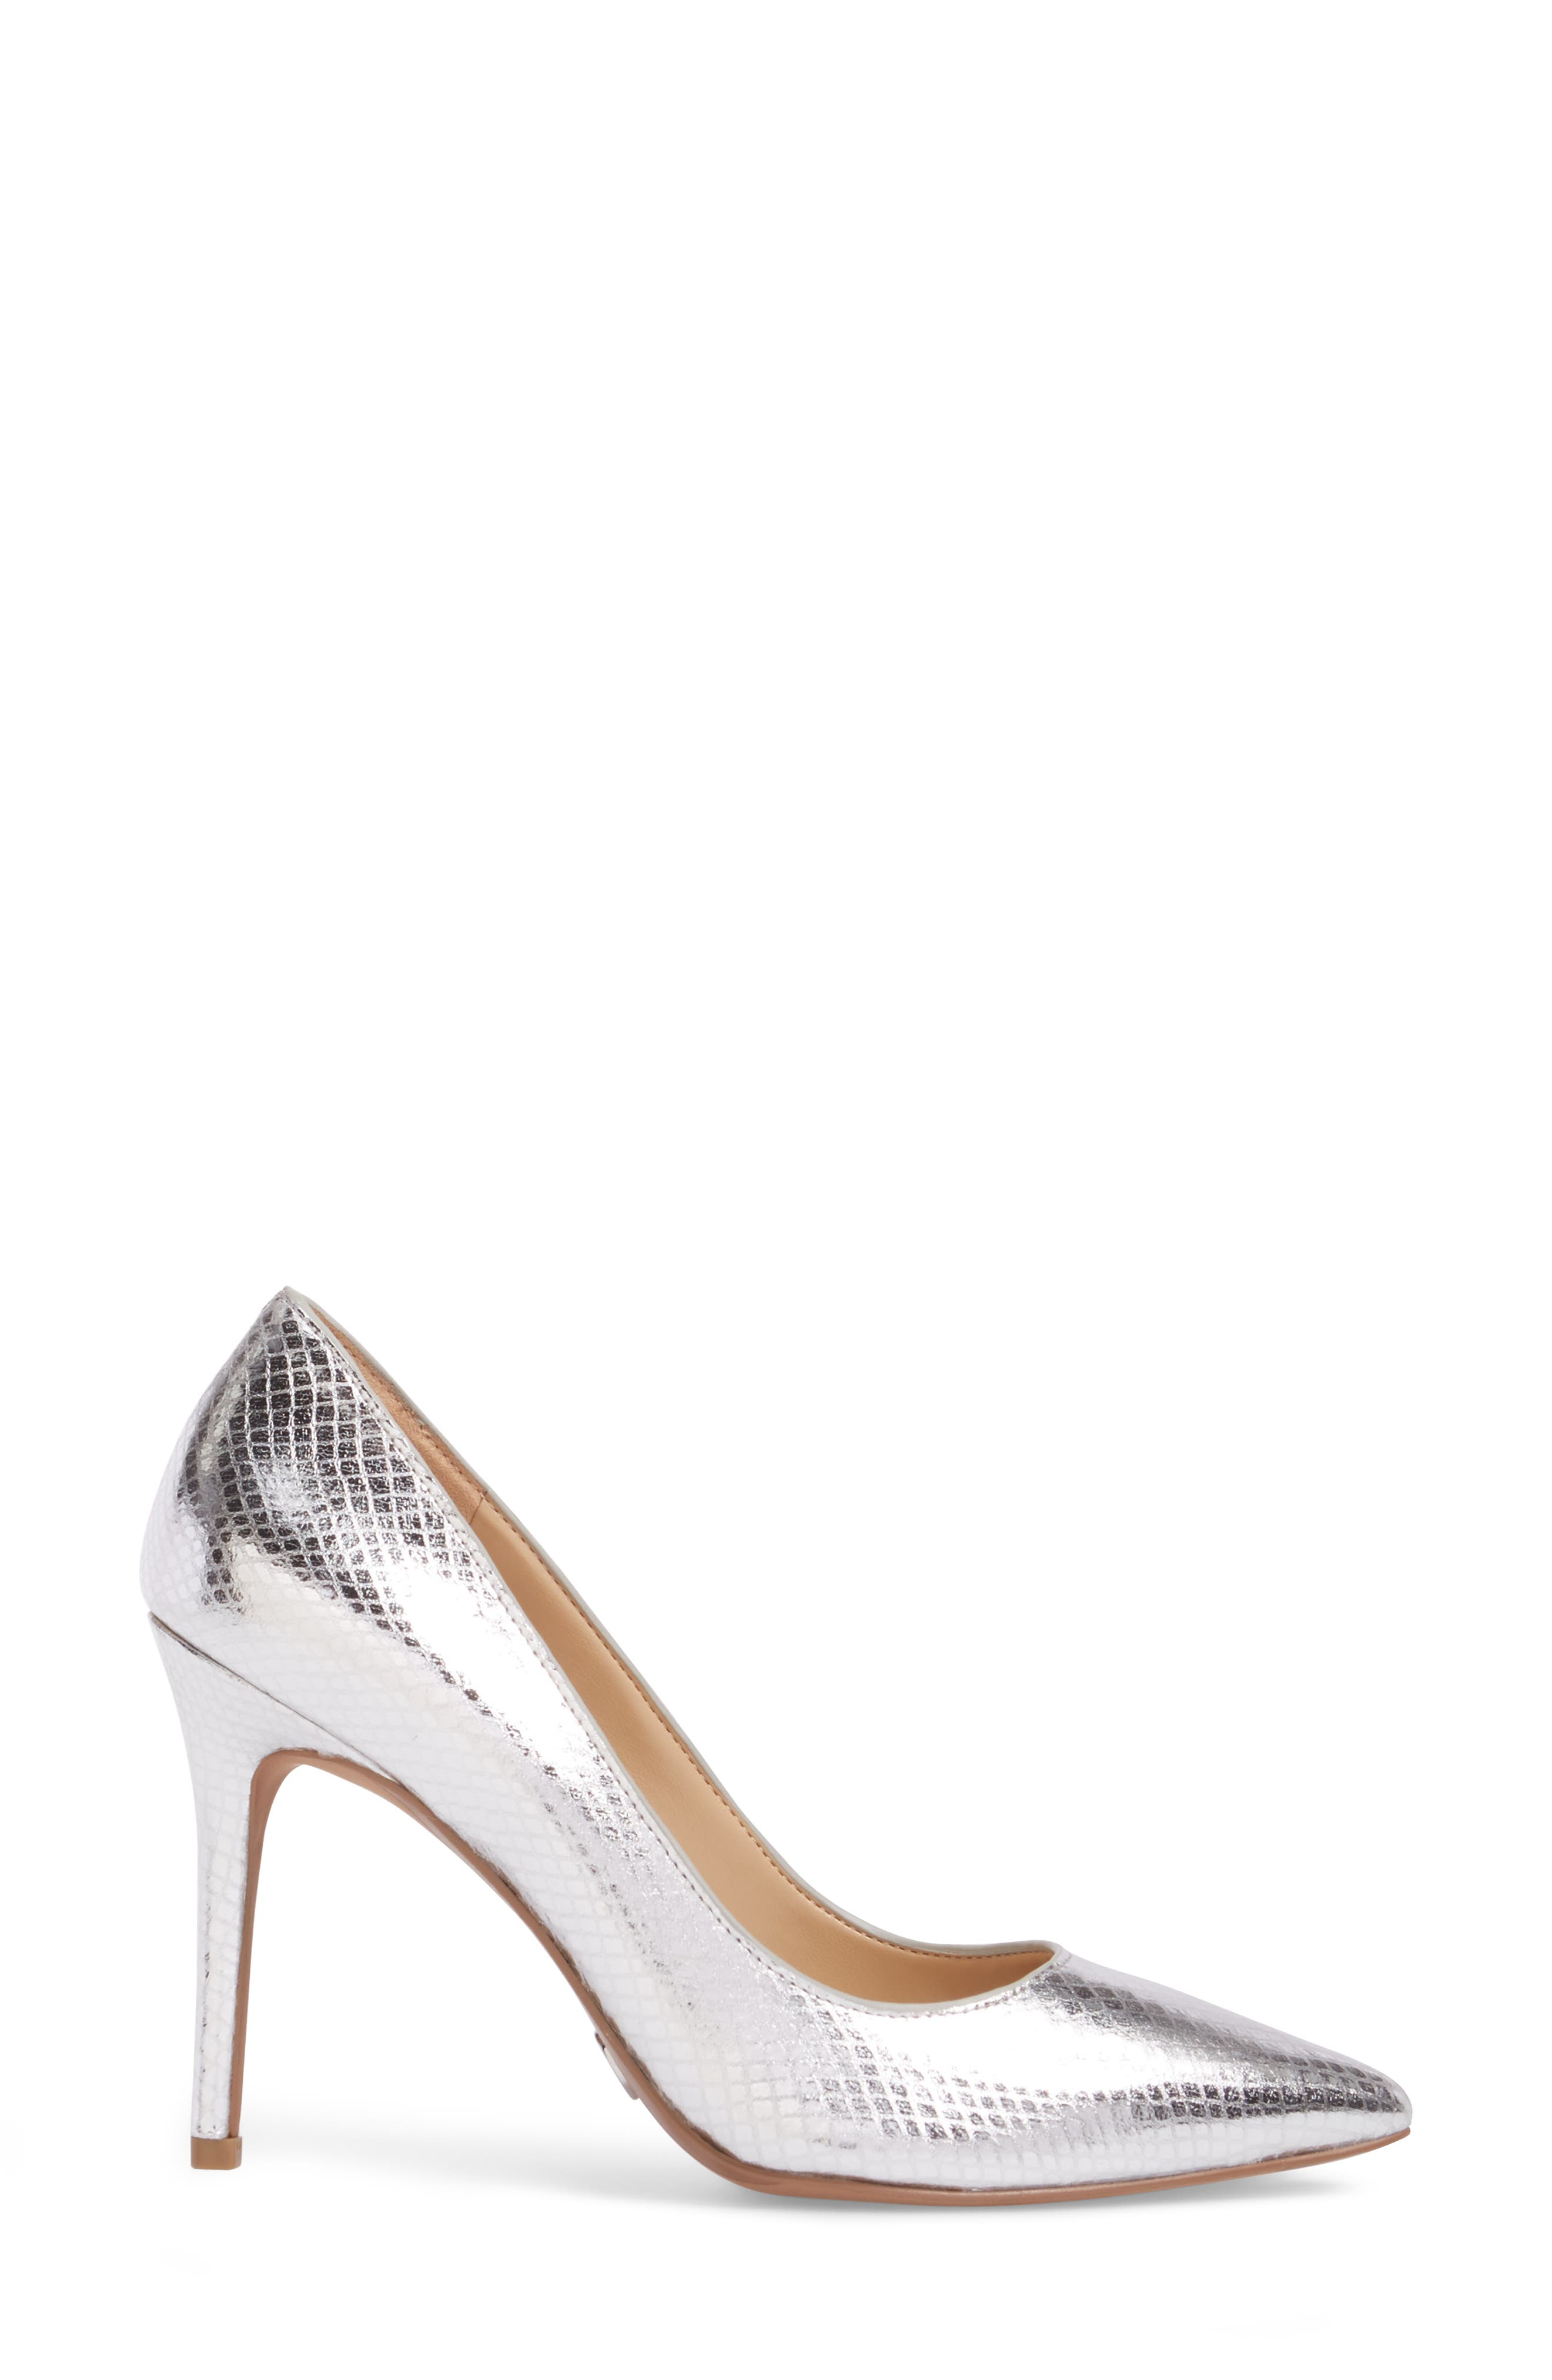 Claire Pointy Toe Pump,                             Alternate thumbnail 3, color,                             040